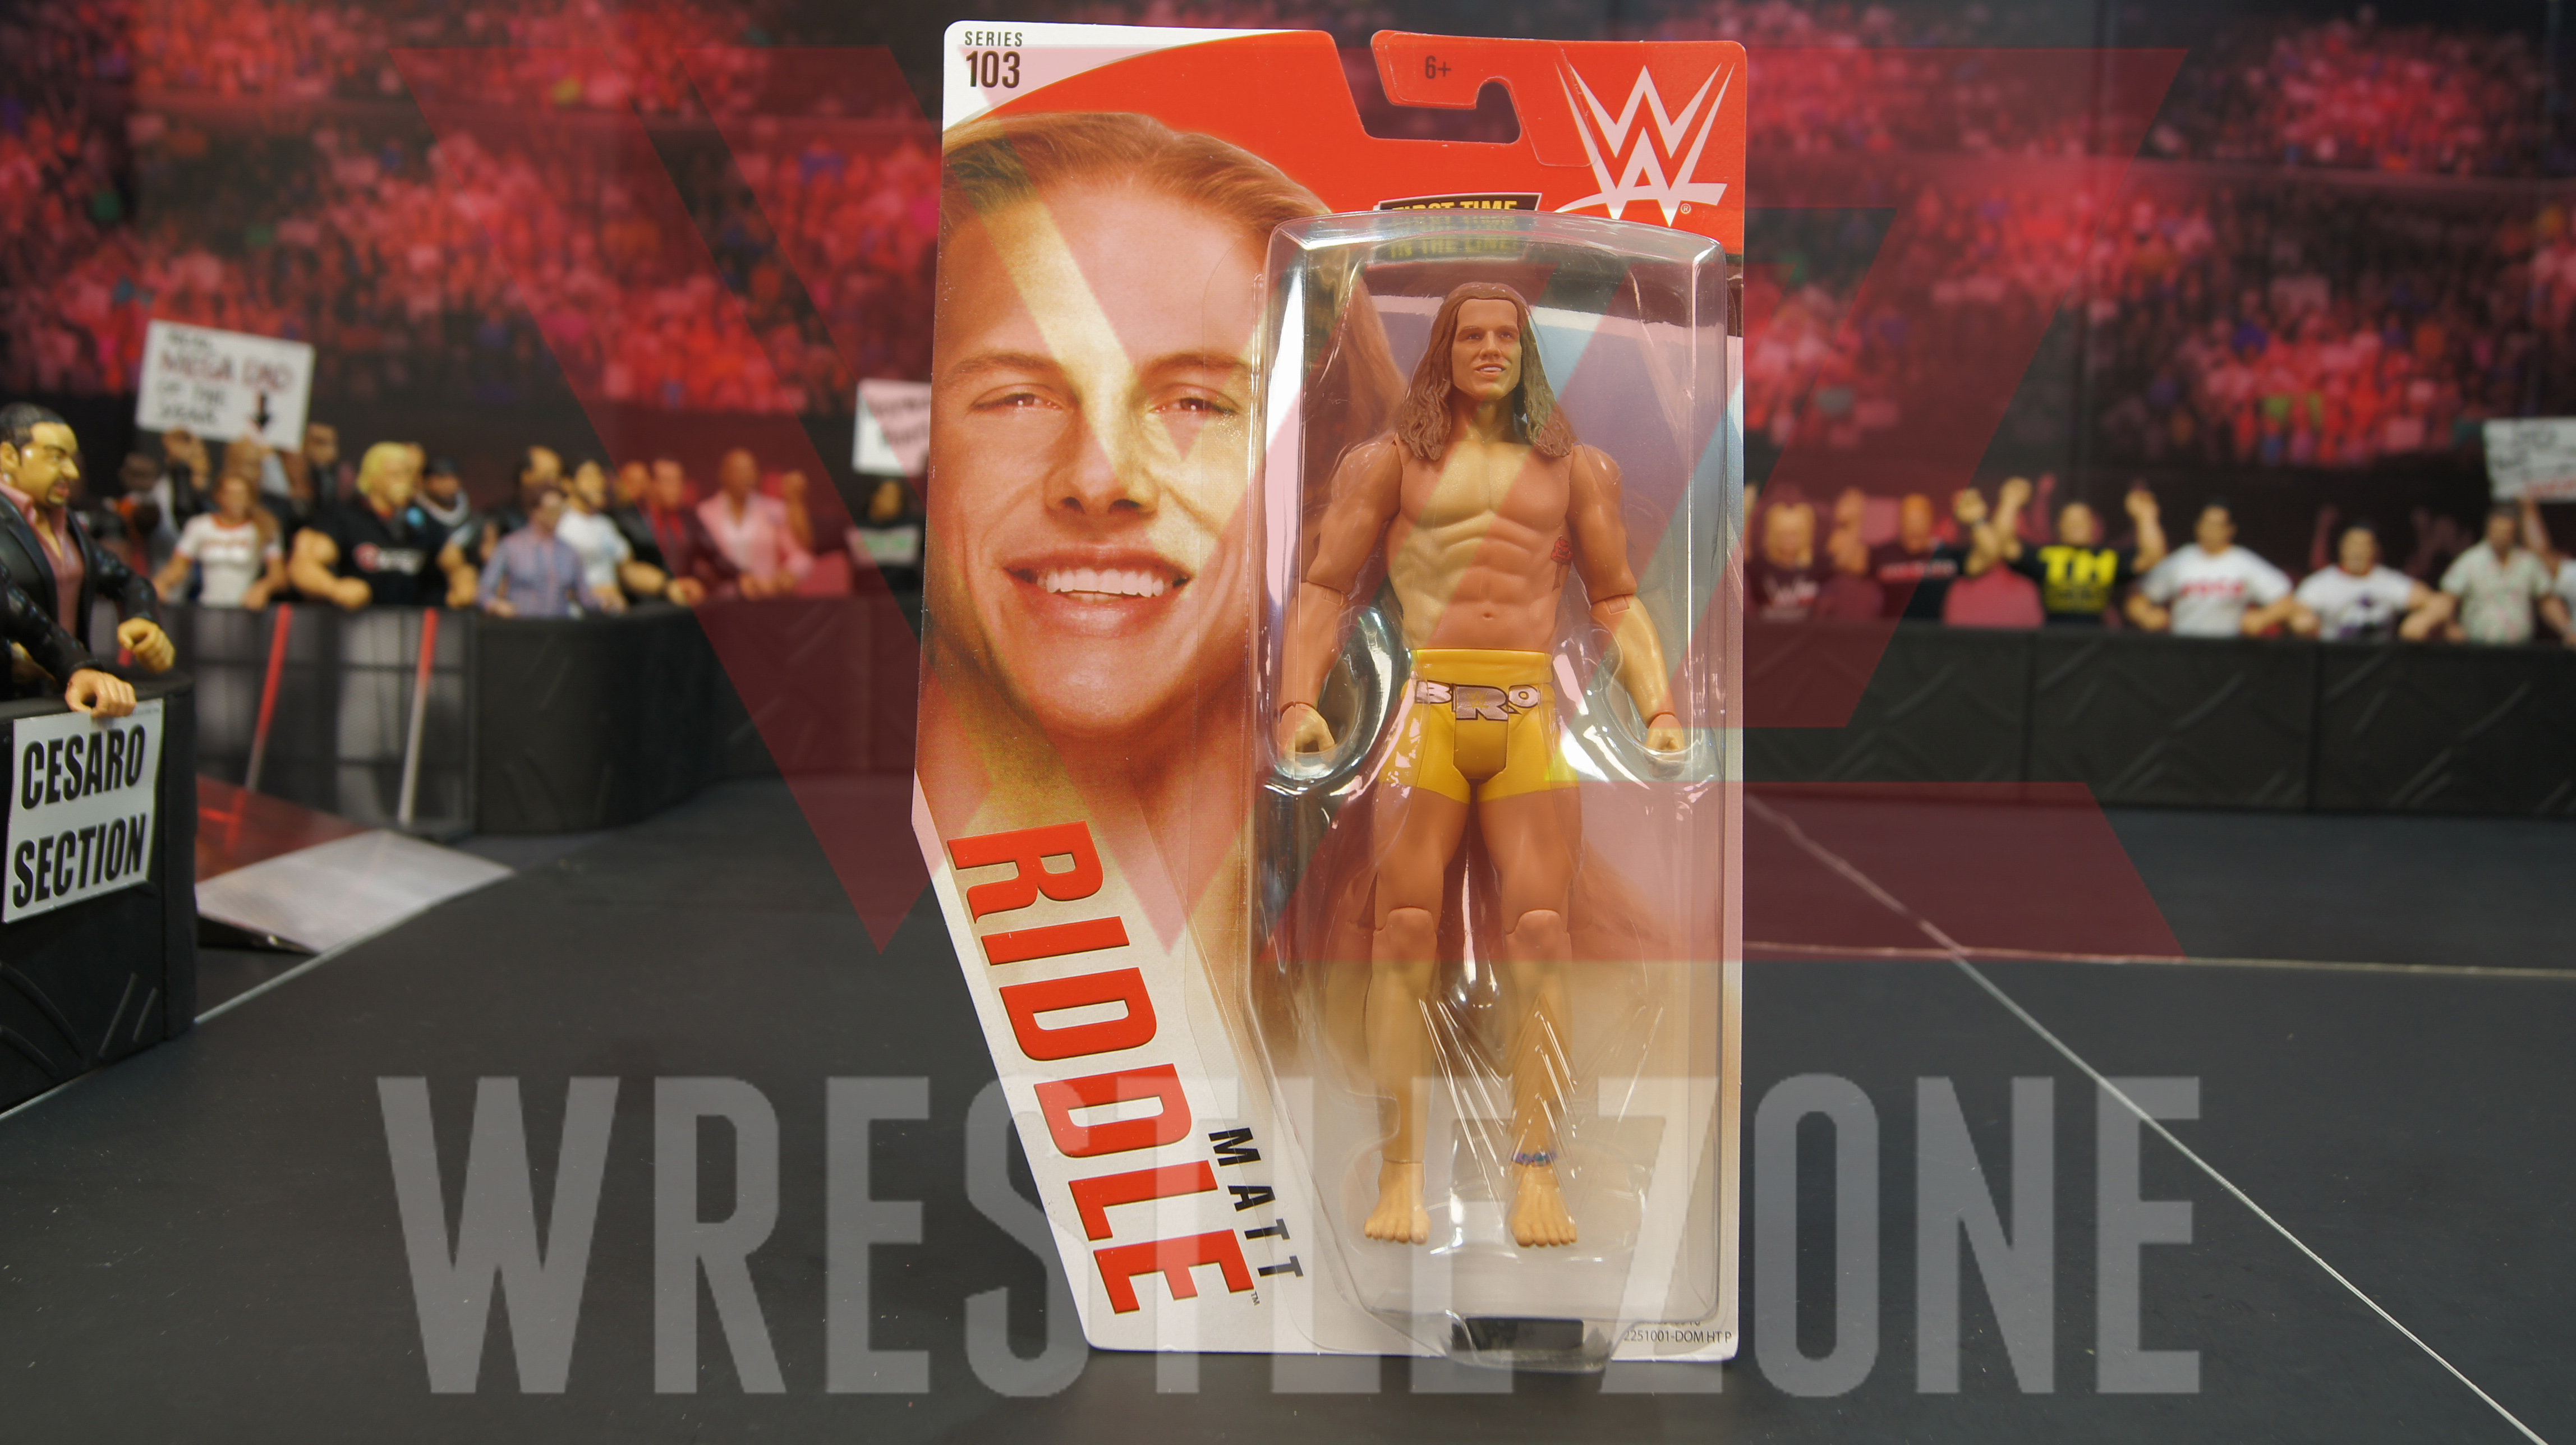 wz_wwe_series103_riddle_a